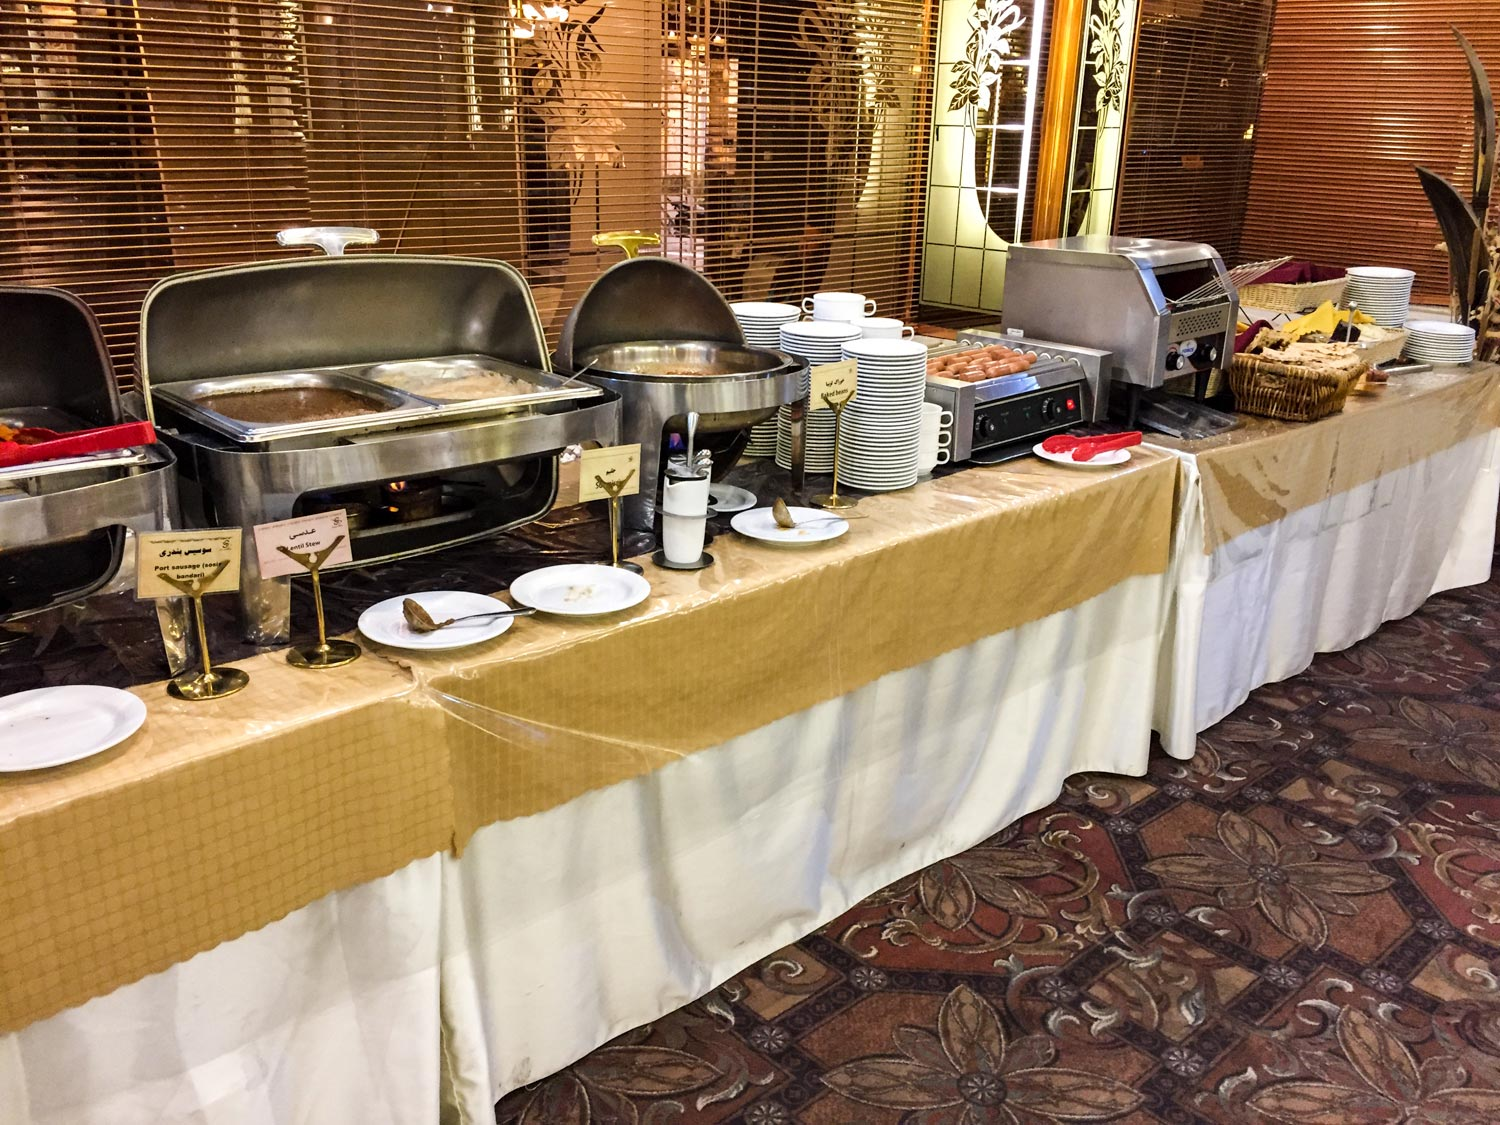 Setareh Hotel Isfahan - buffet items set up with labels detailing the ingredients